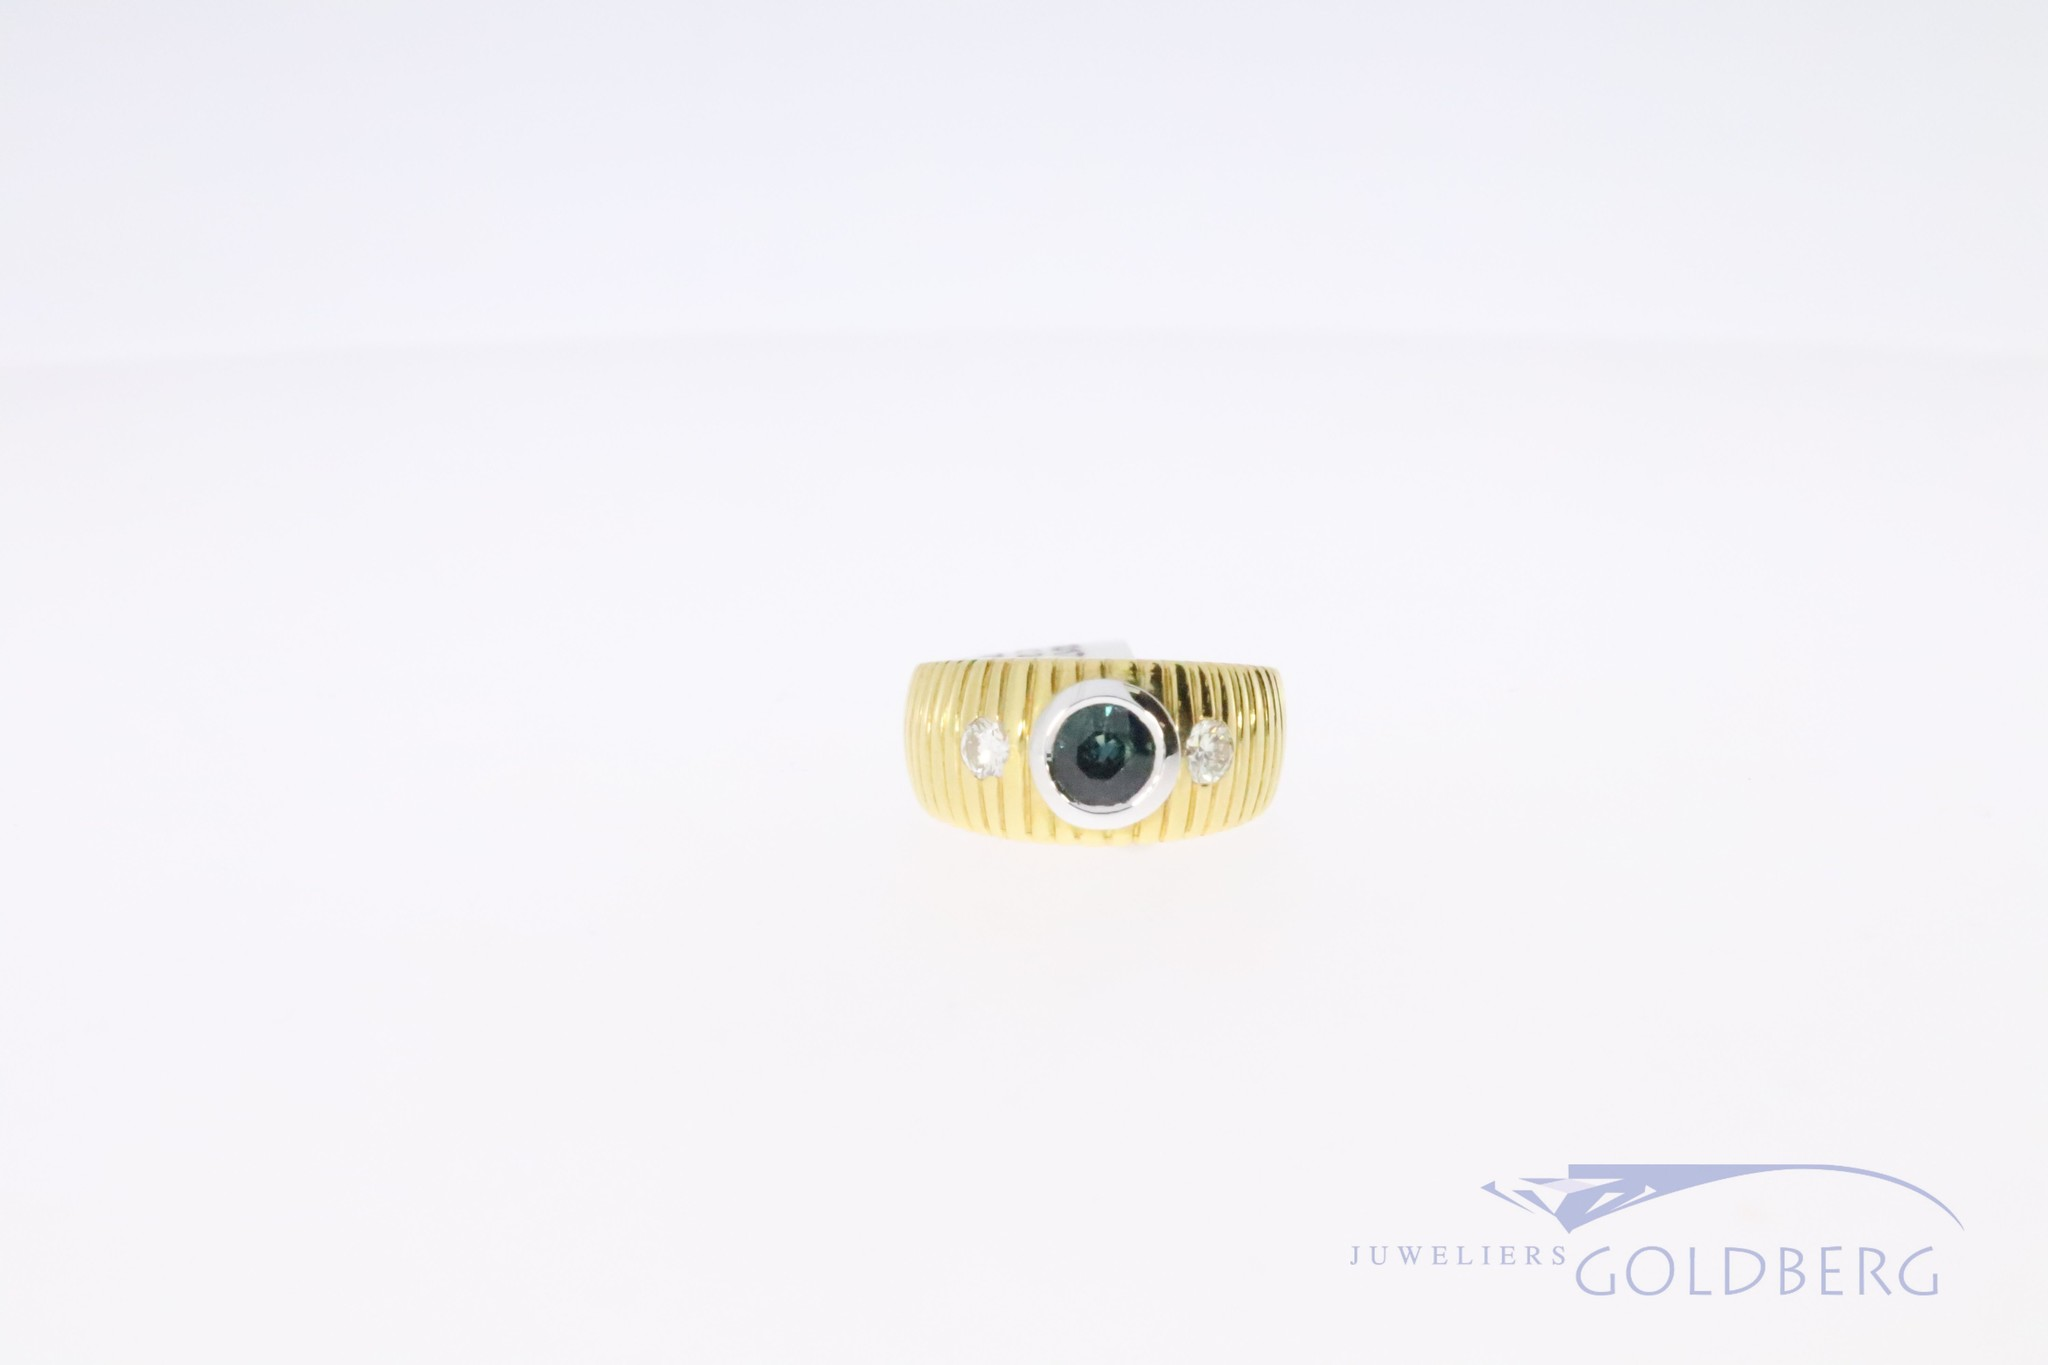 18k ring with briljant cut diamant and blue saphire